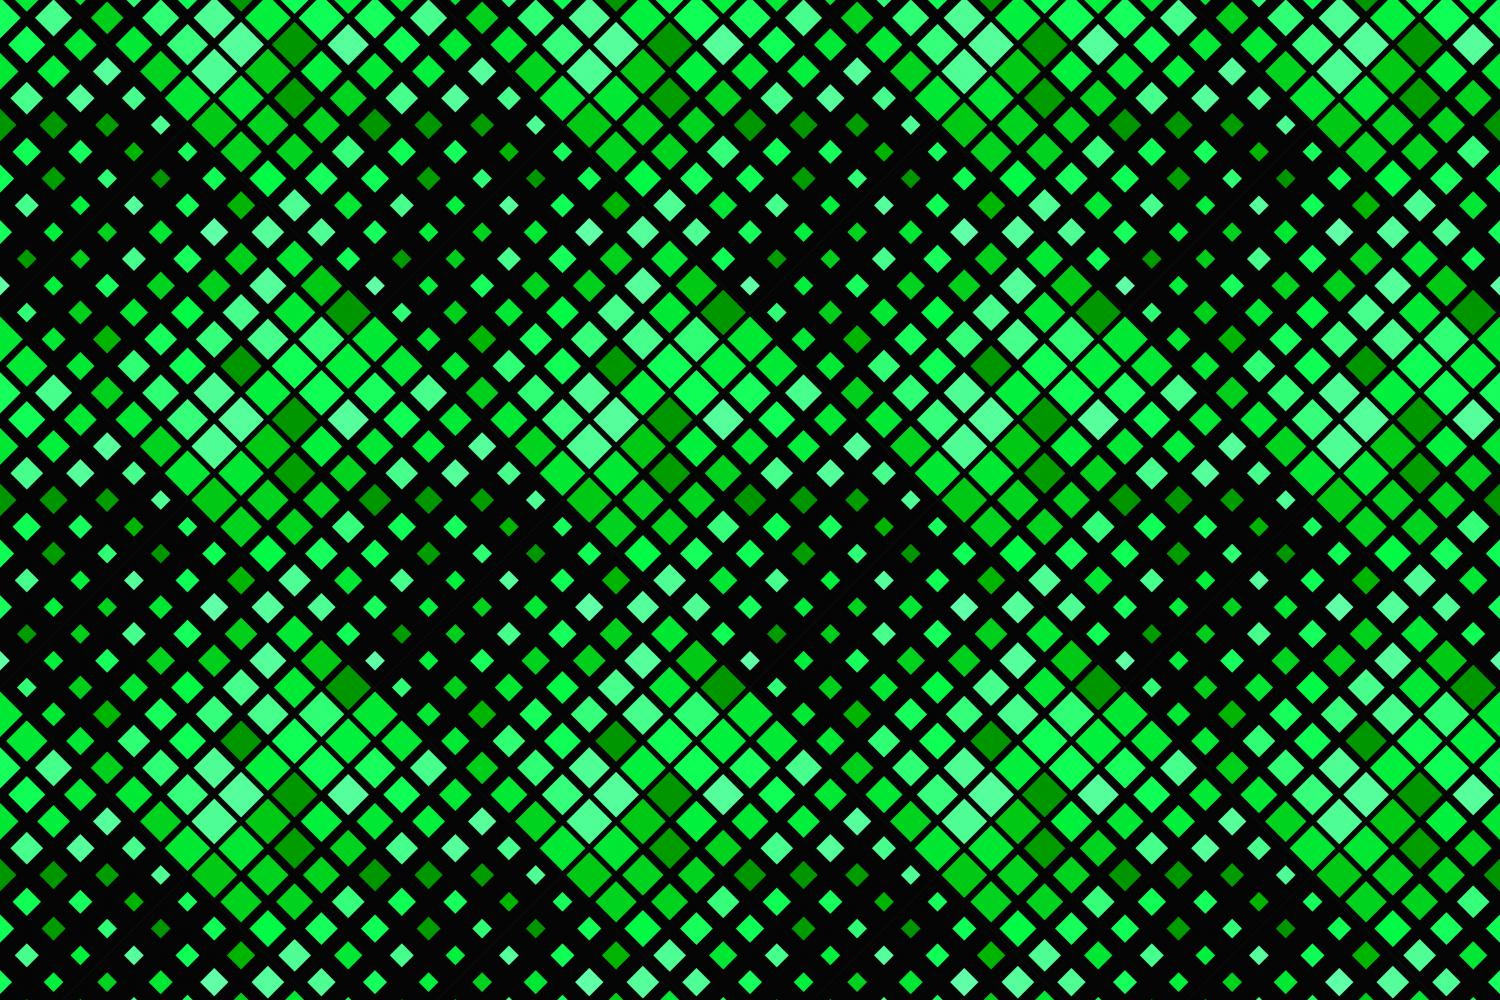 24 Seamless Green Square Patterns example image 17